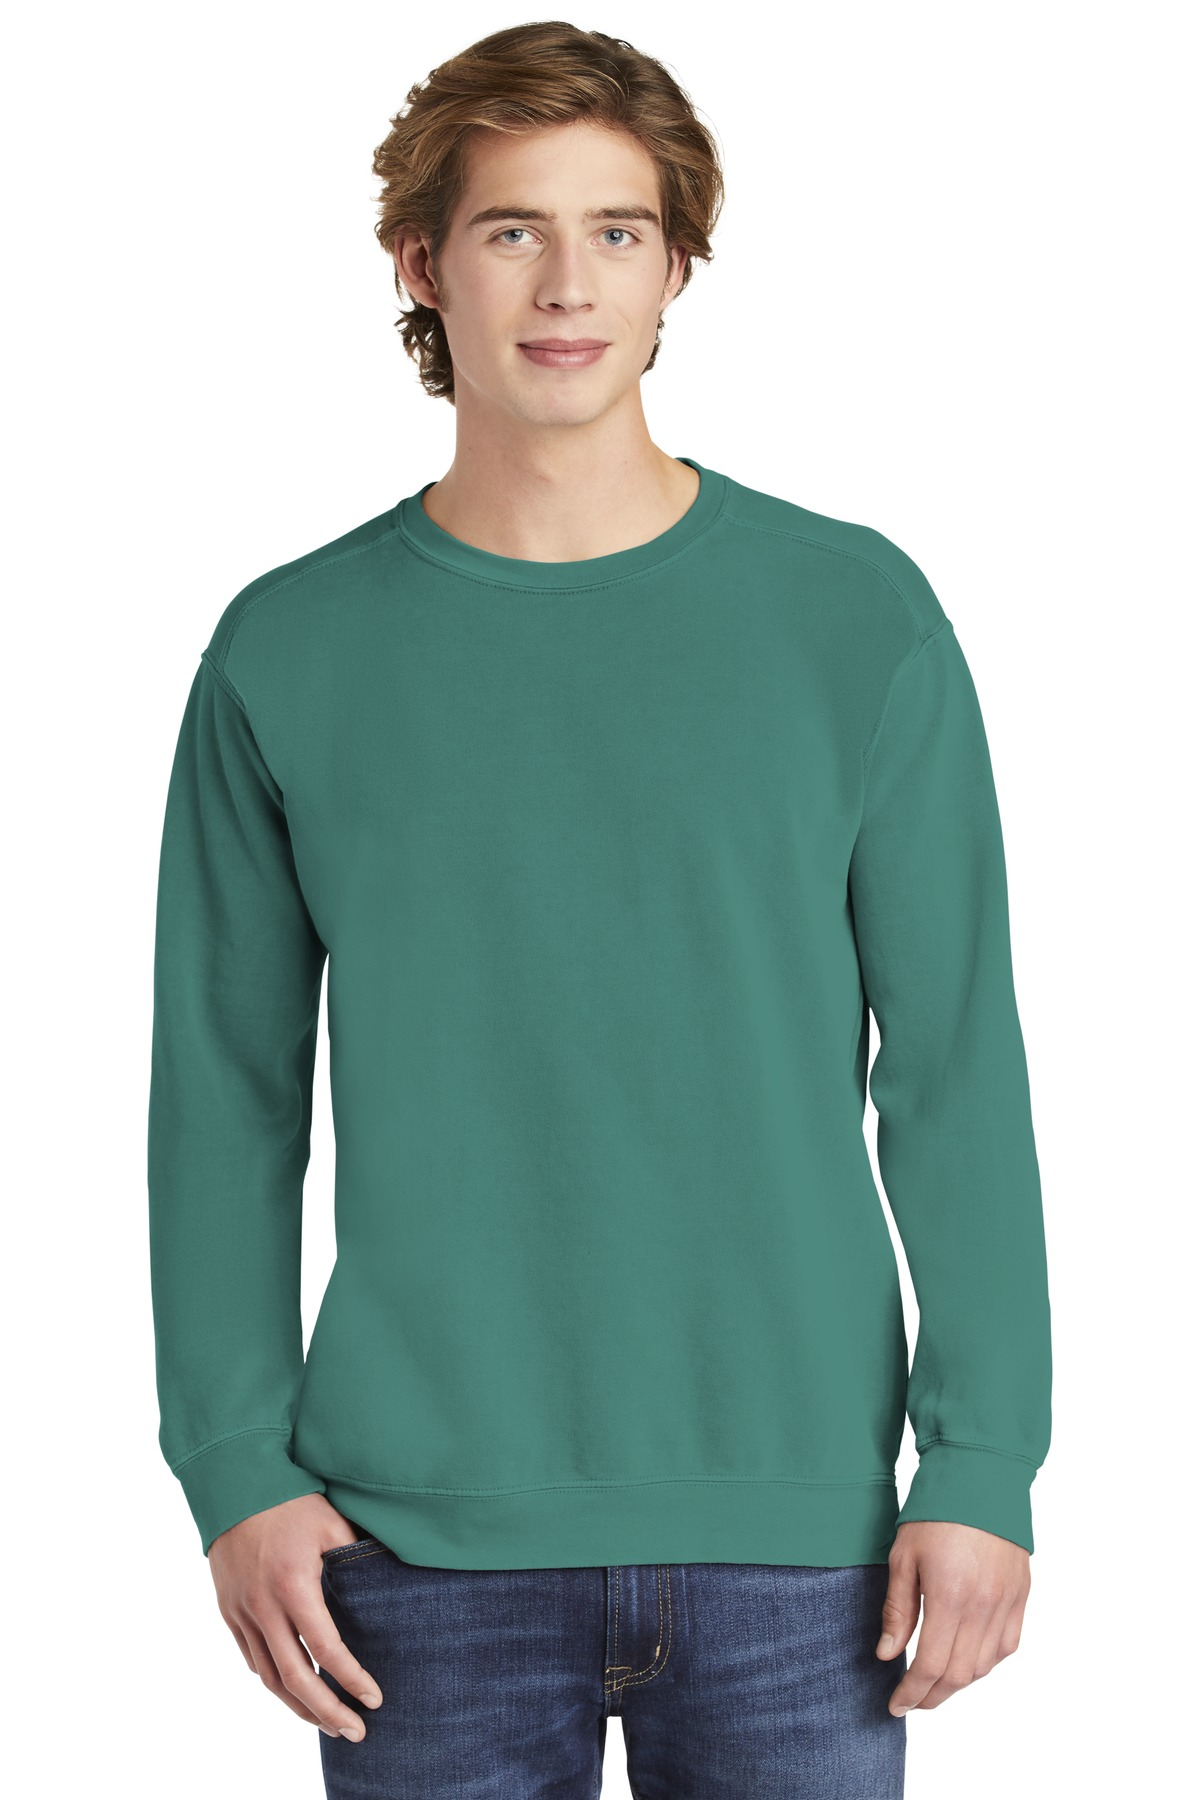 COMFORT COLORS  ®  Ring Spun Crewneck Sweatshirt. 1566 - Seafoam